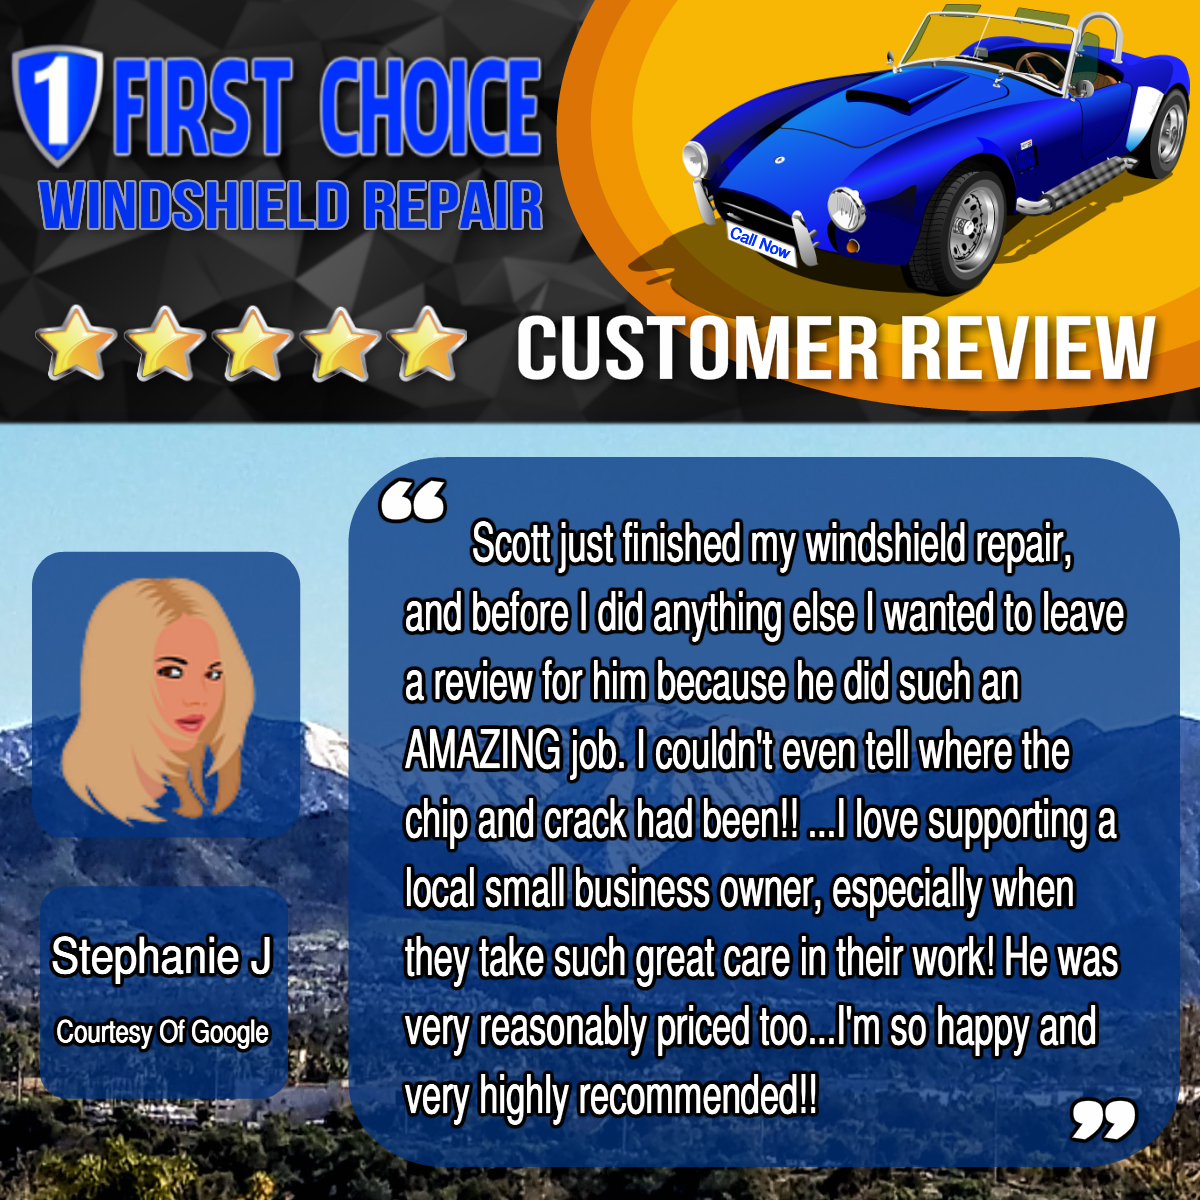 Stephanie J review screenshot from Google